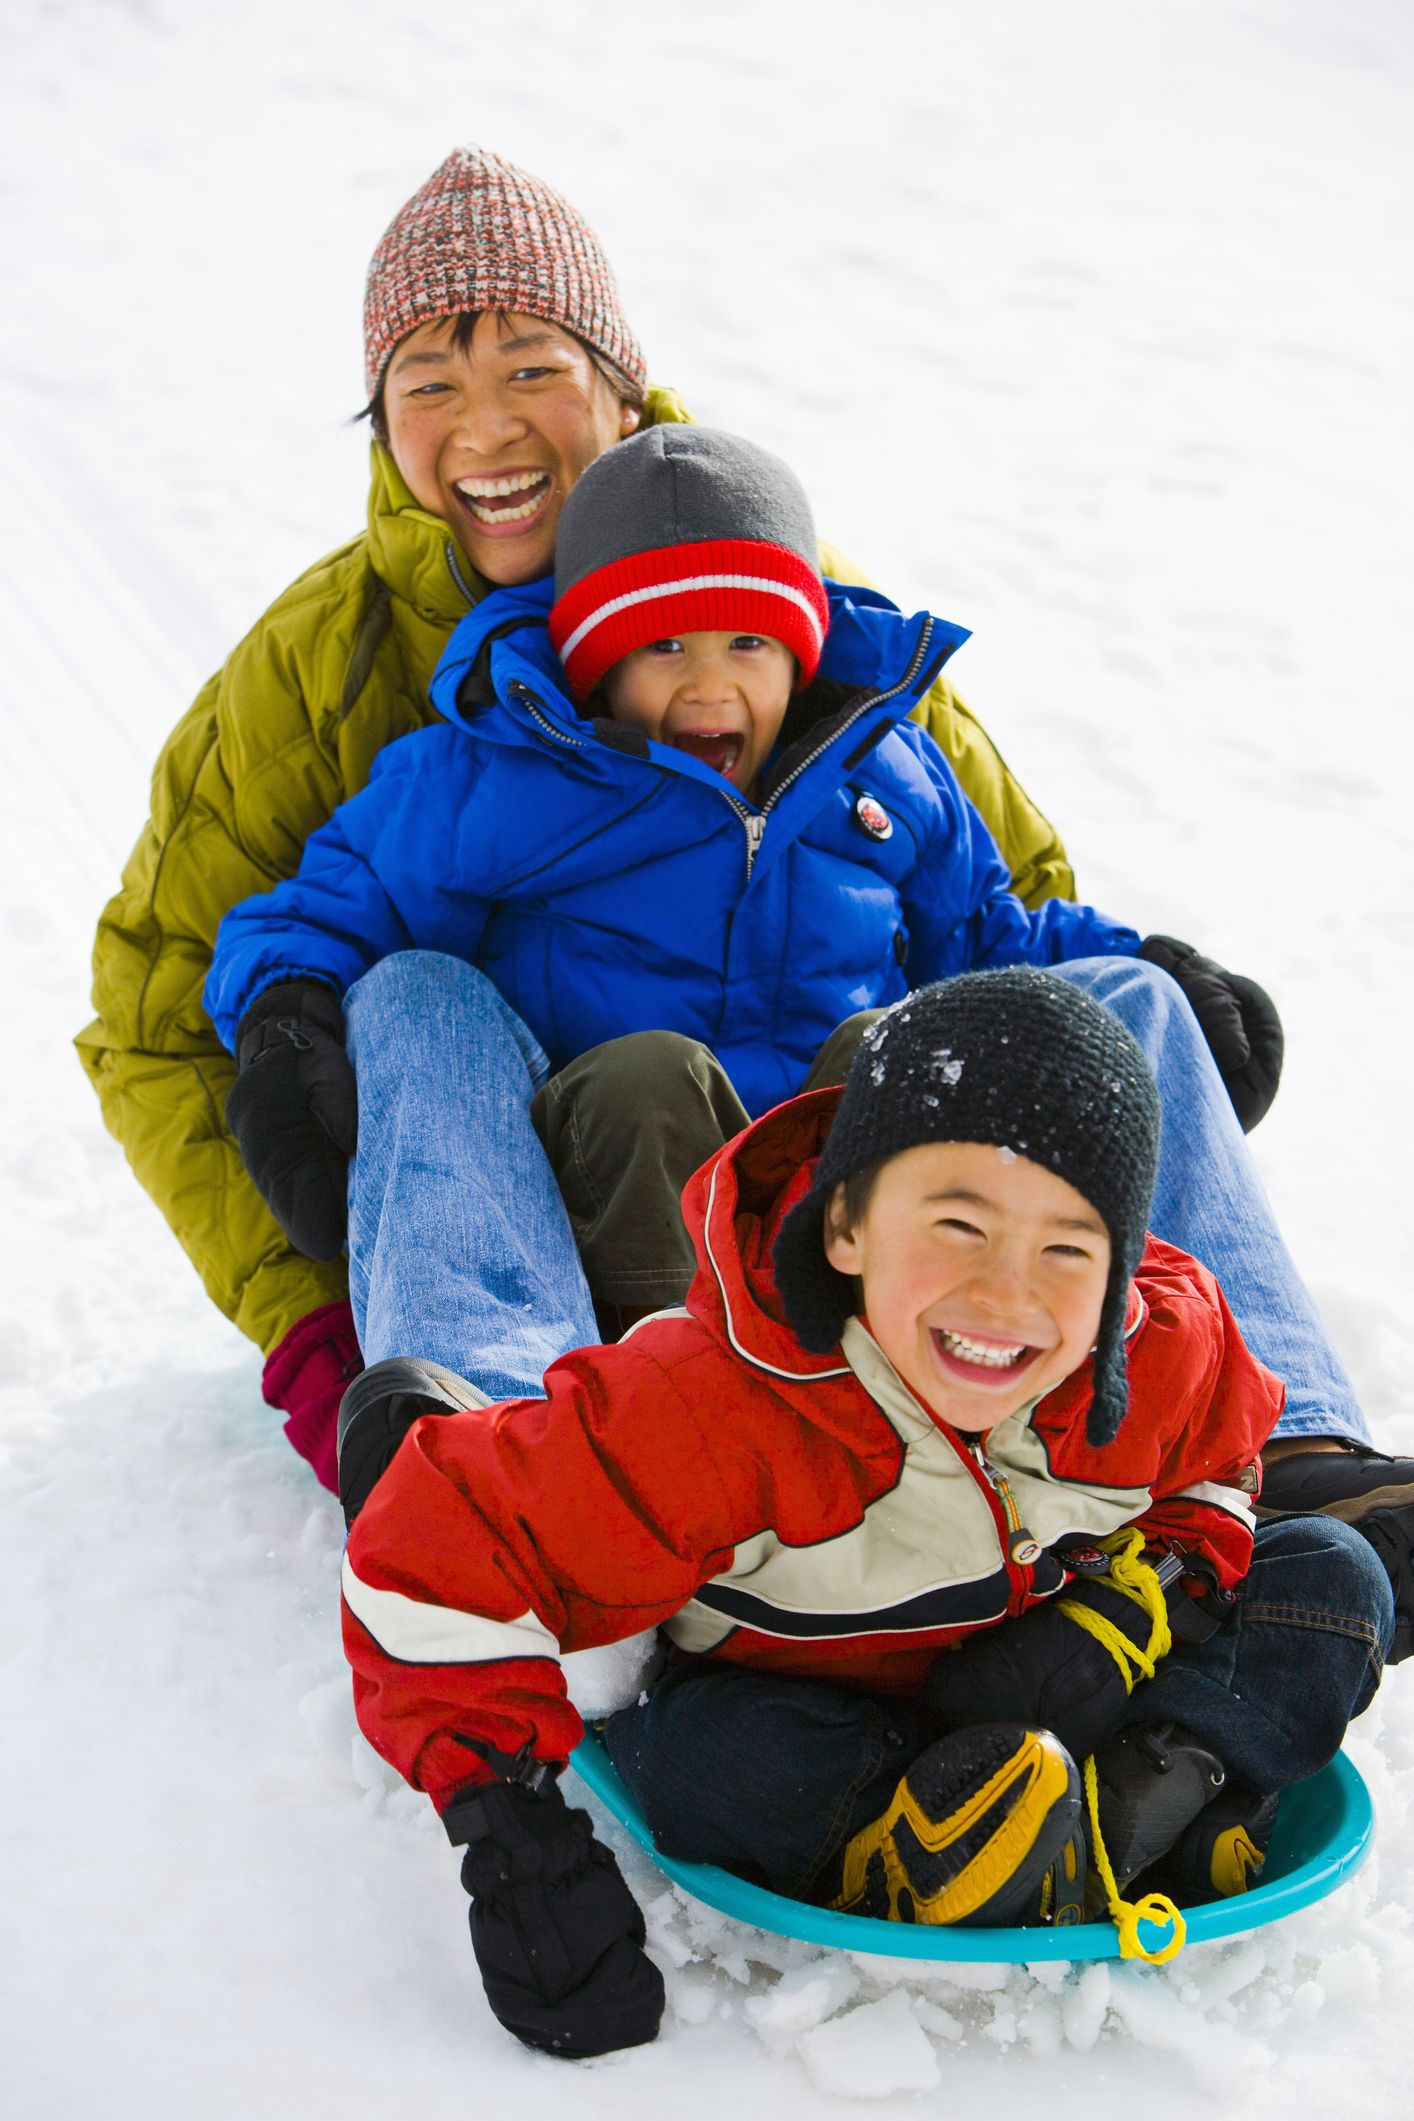 mother and two son 4 6 sledding down hill, laughing, elevated view